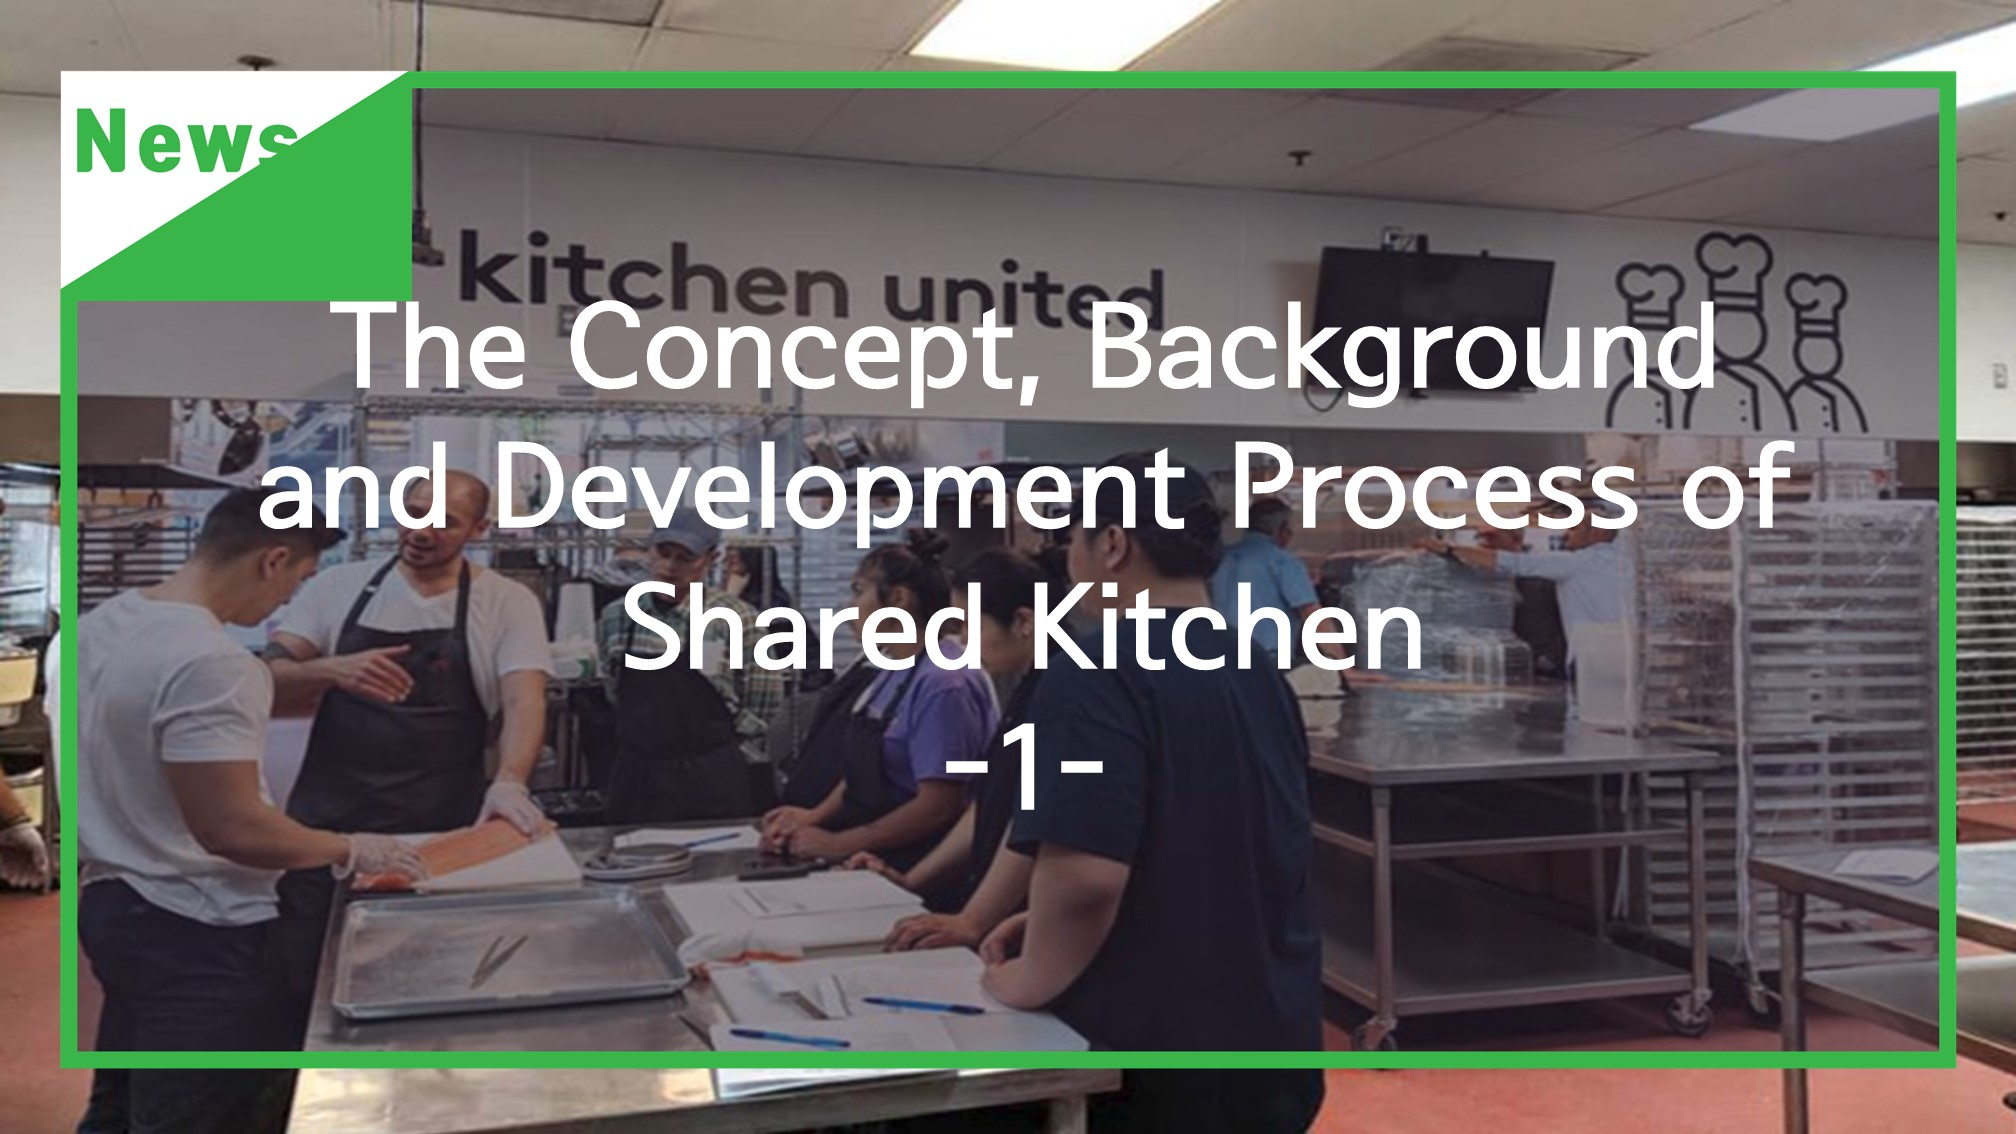 [News] The Concept, Background and Development Process of Shared Kitchen